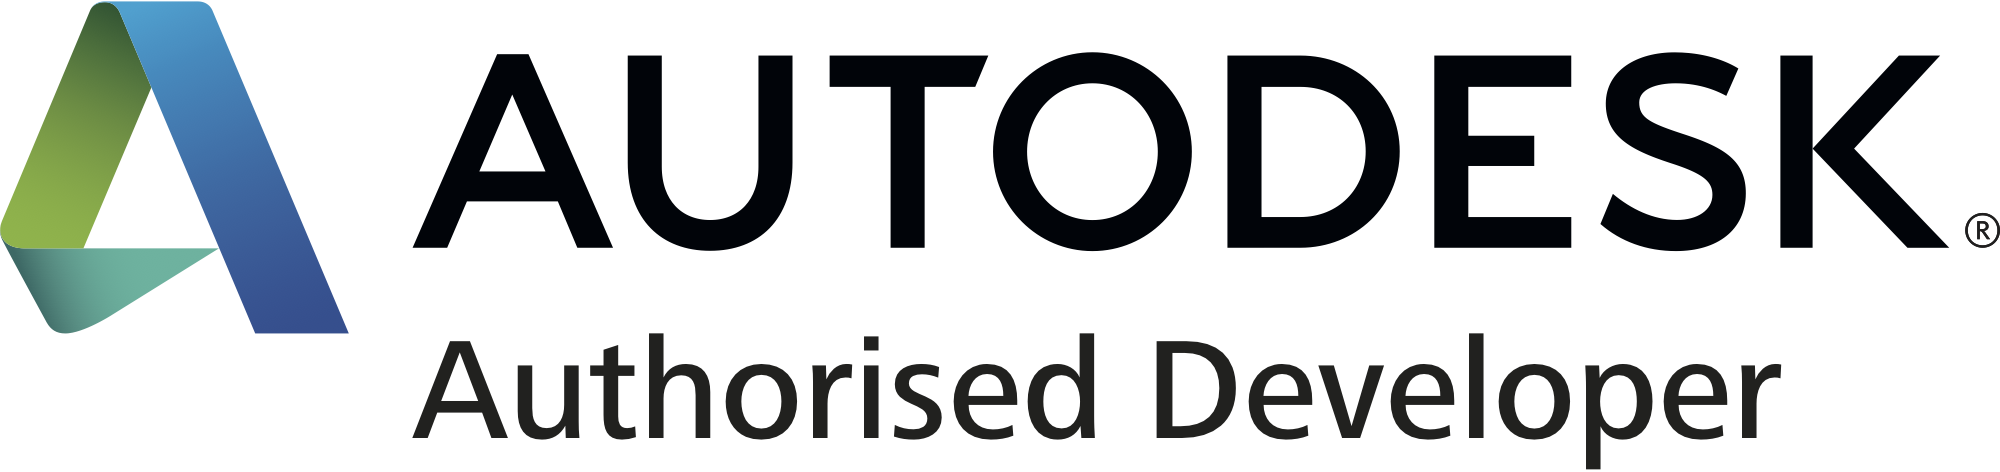 skyciv is a registered autodesk authorised developer